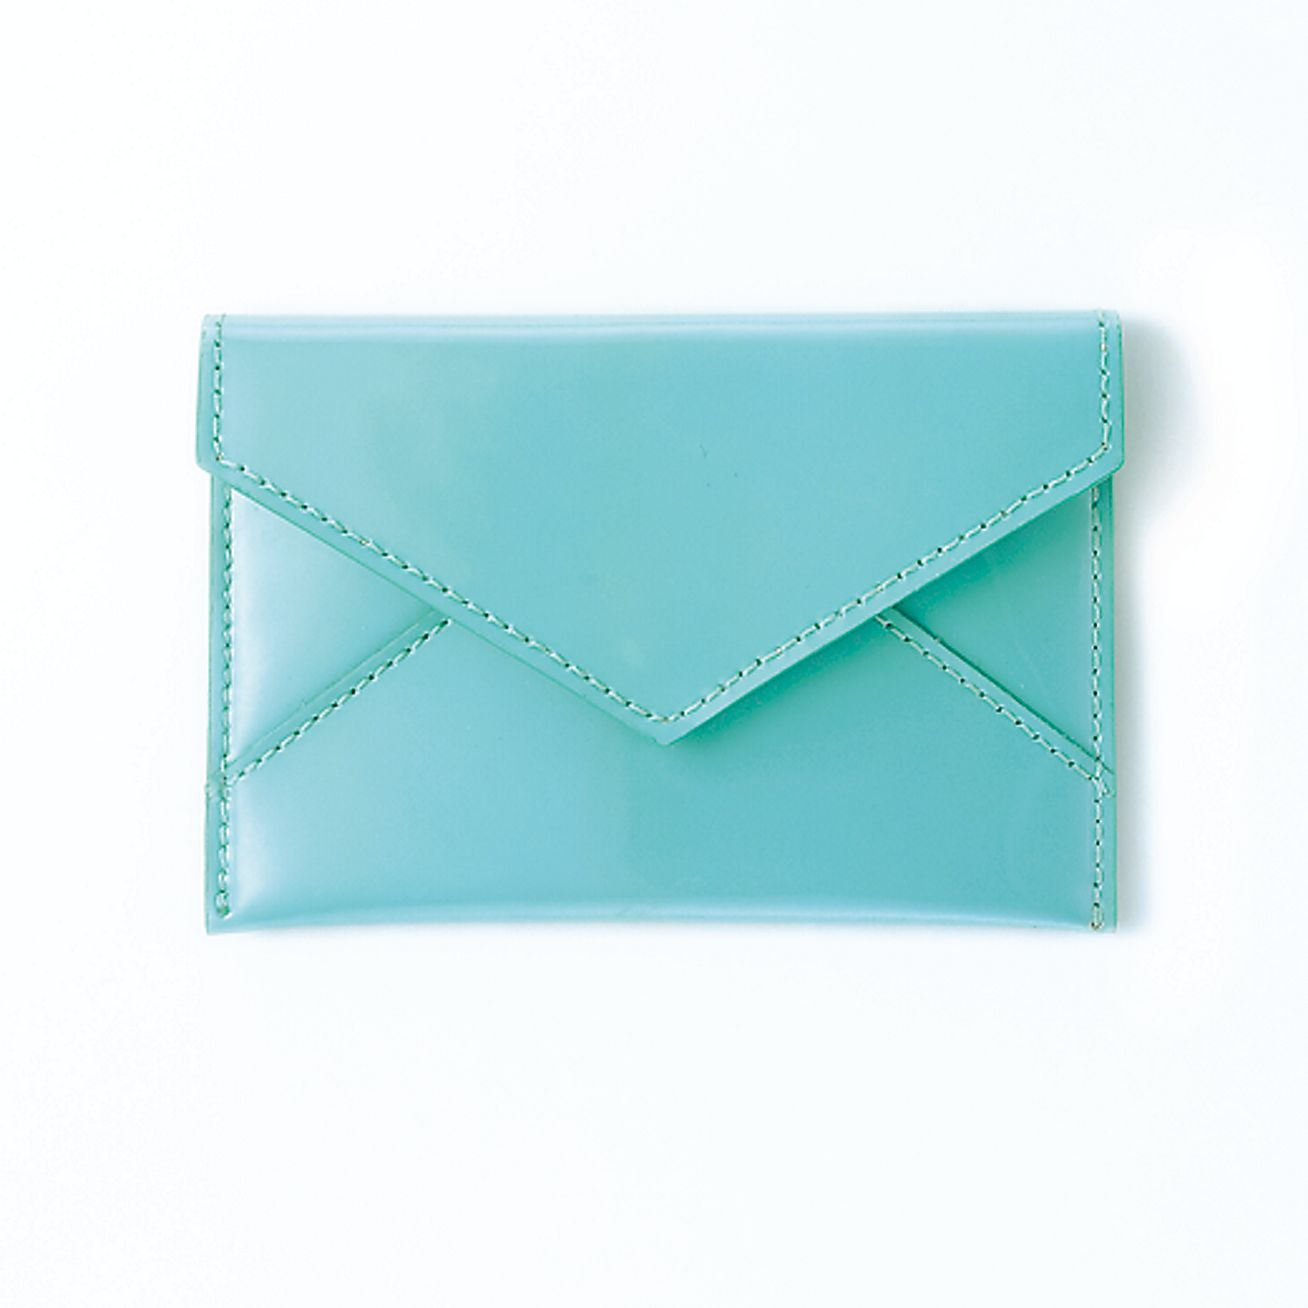 Tiffany bluer patent leather business card case tiffany for Tiffany business card case